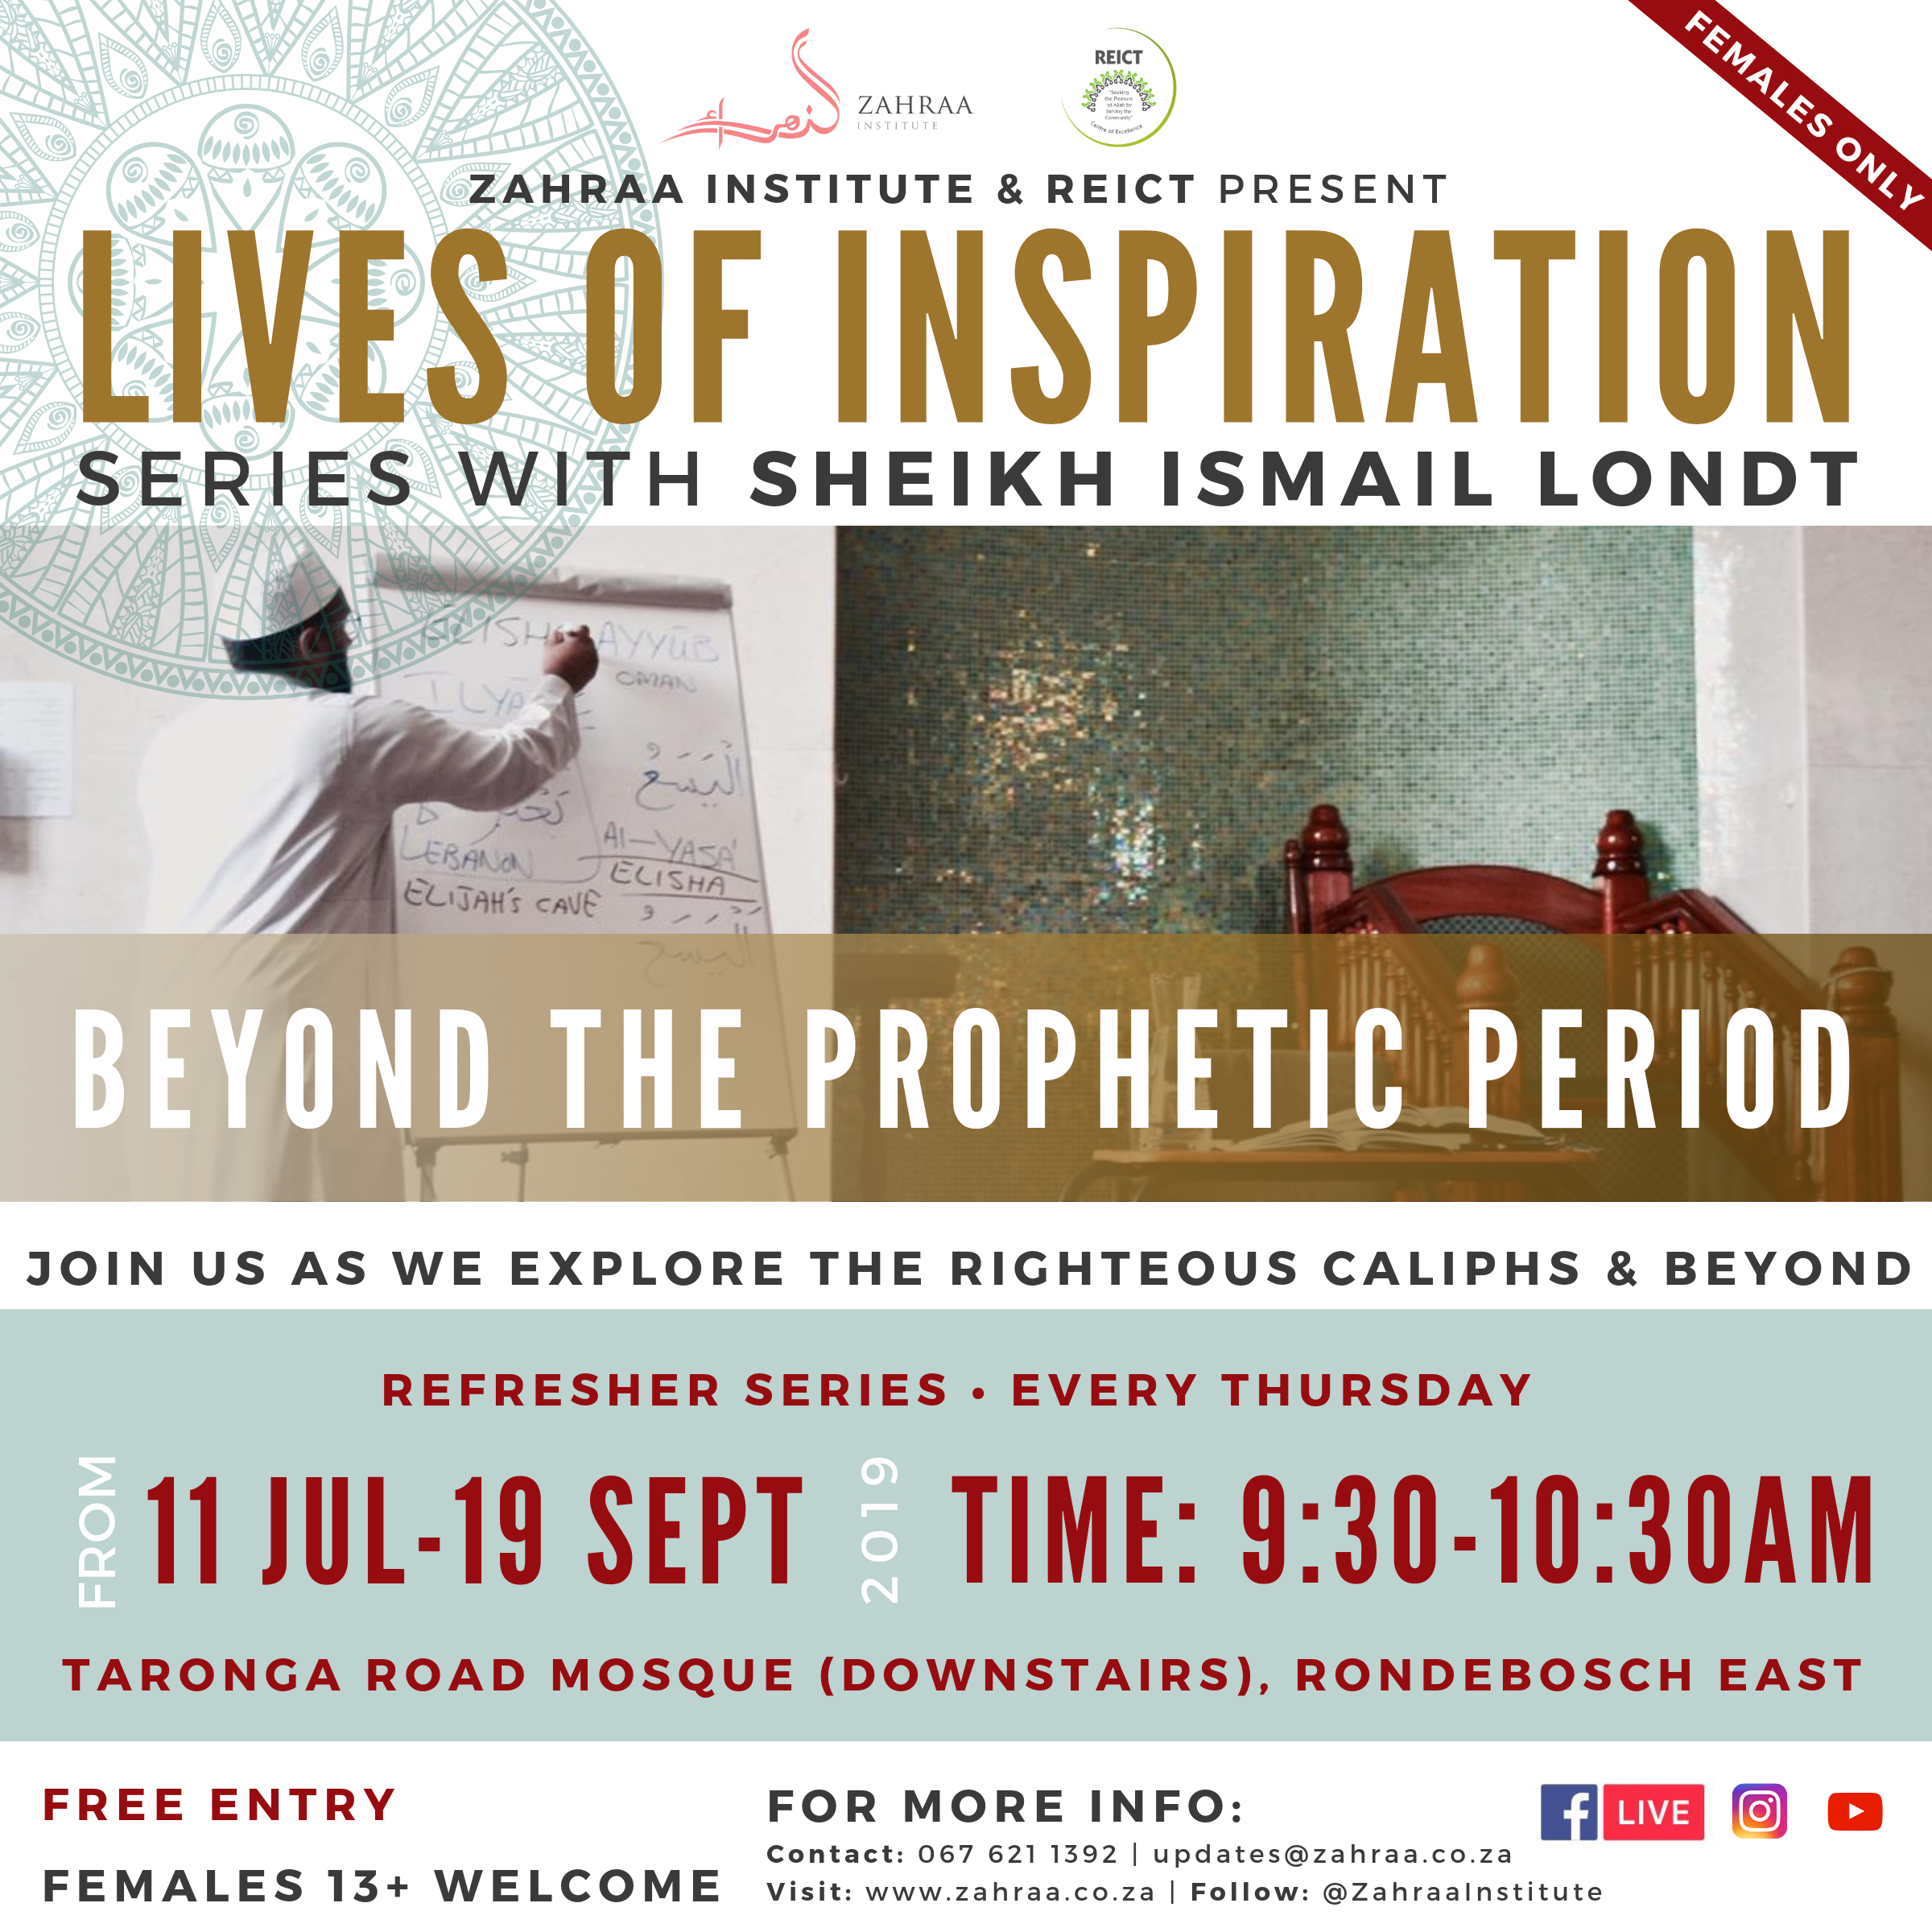 Lives of Inspiration Series - Beyond the Prophetic Period with Sheikh Ismail Londt